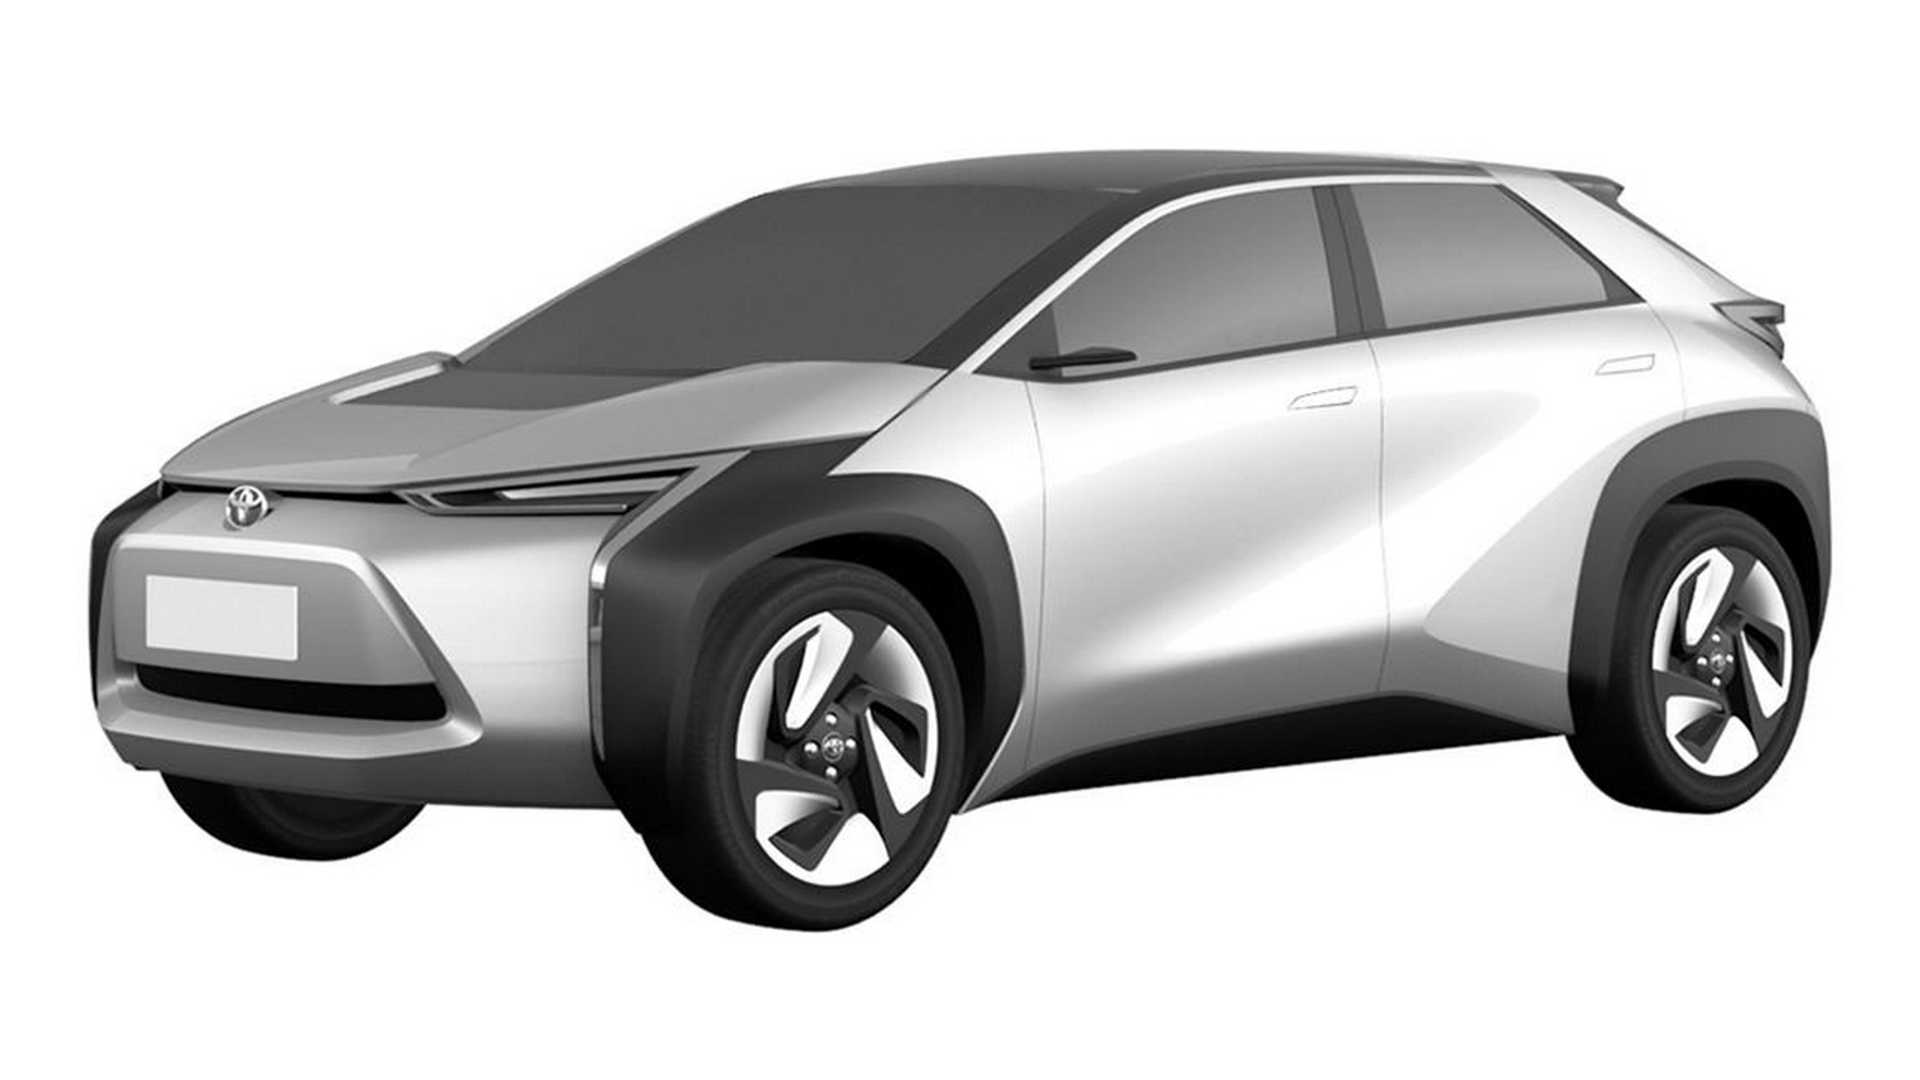 The Japanese automotive giant has big plans regarding the electric vehicle markets, as evidenced by the five EV concepts shown last year alone. In 2020, Toyota planned to launch production of these cars in Indonesia and China, and it seems like it could be starting soon.